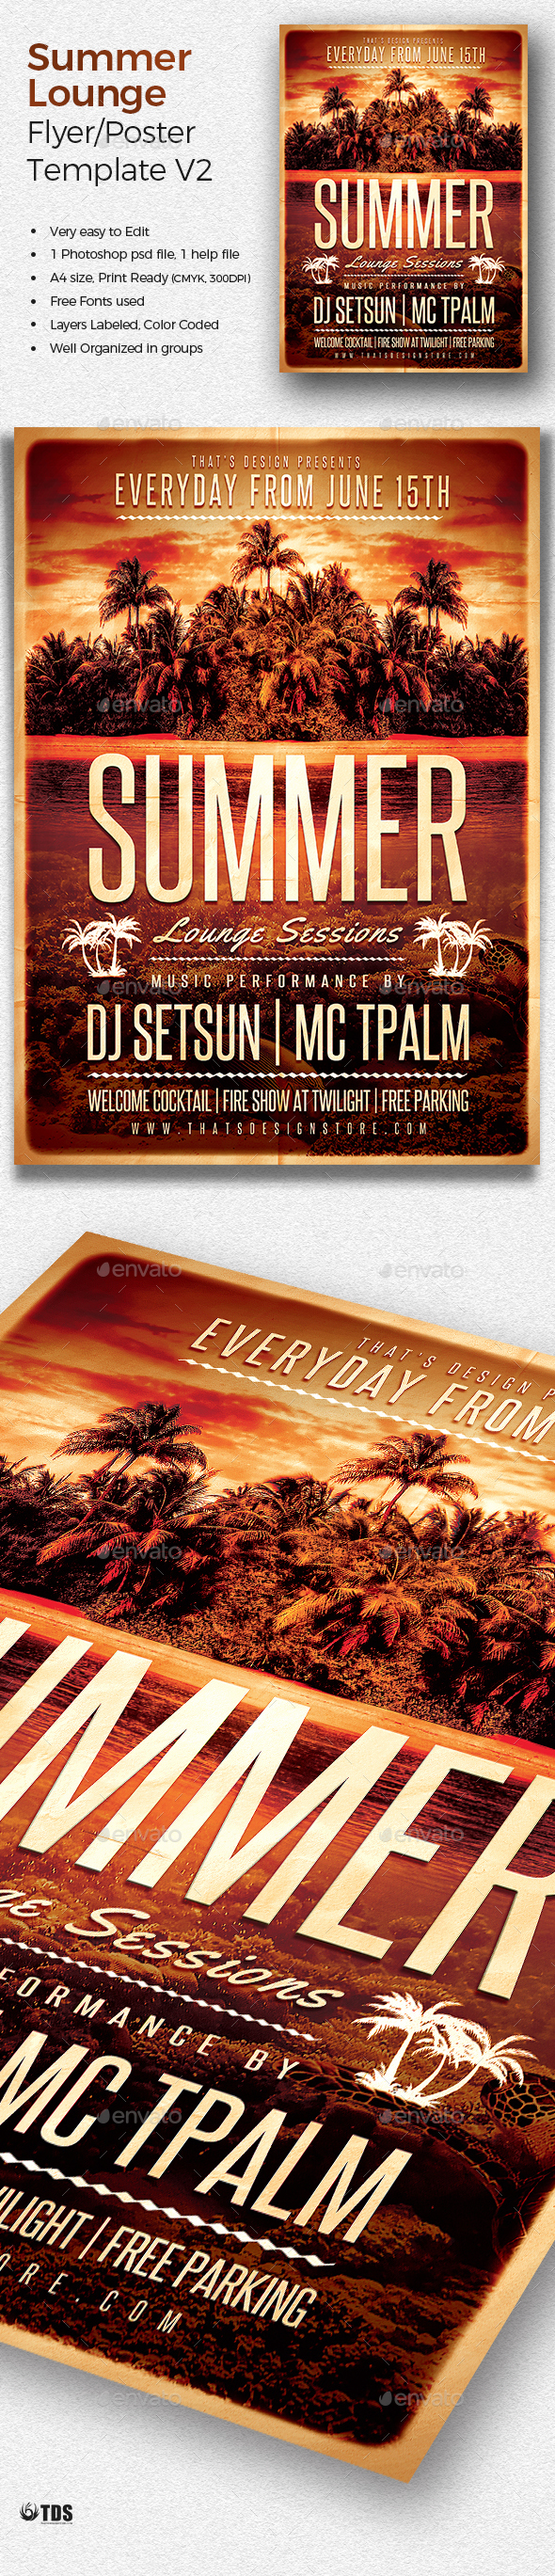 Summer Lounge Flyer Template V2 by lou606 | GraphicRiver